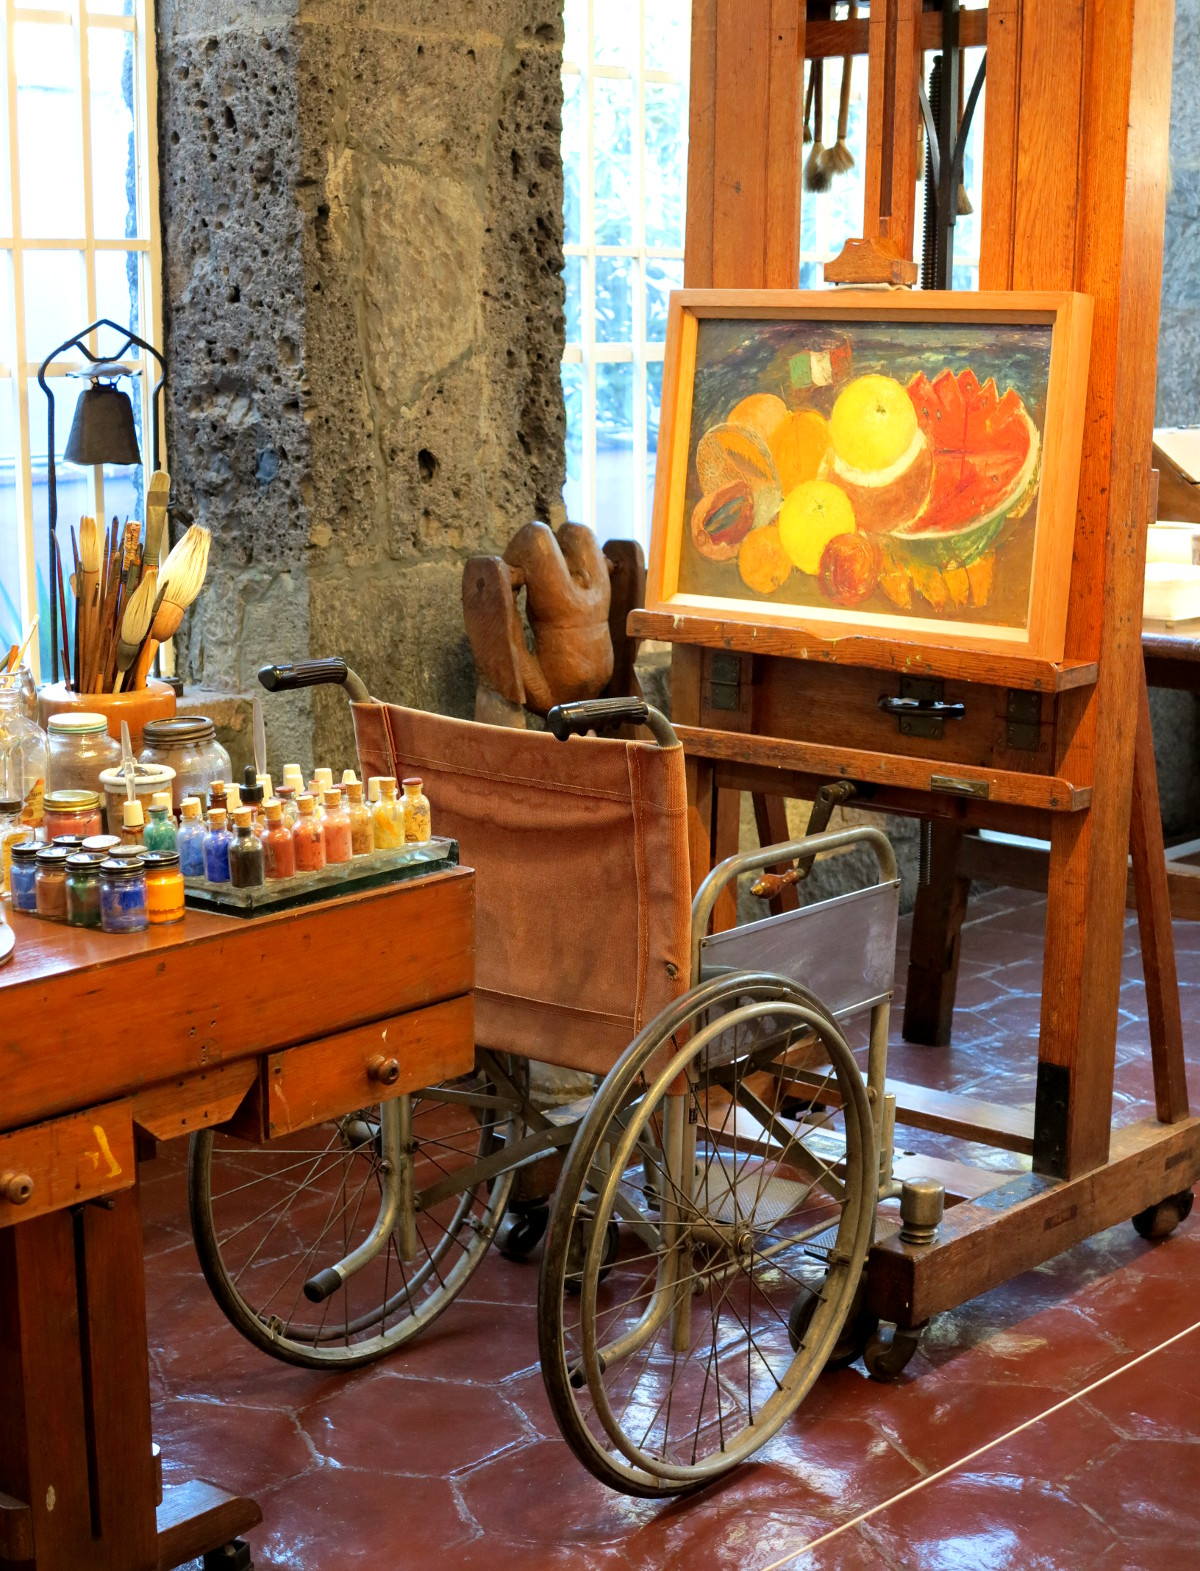 Frida Kahlo studio Mexico City Double-Barrelled Travel